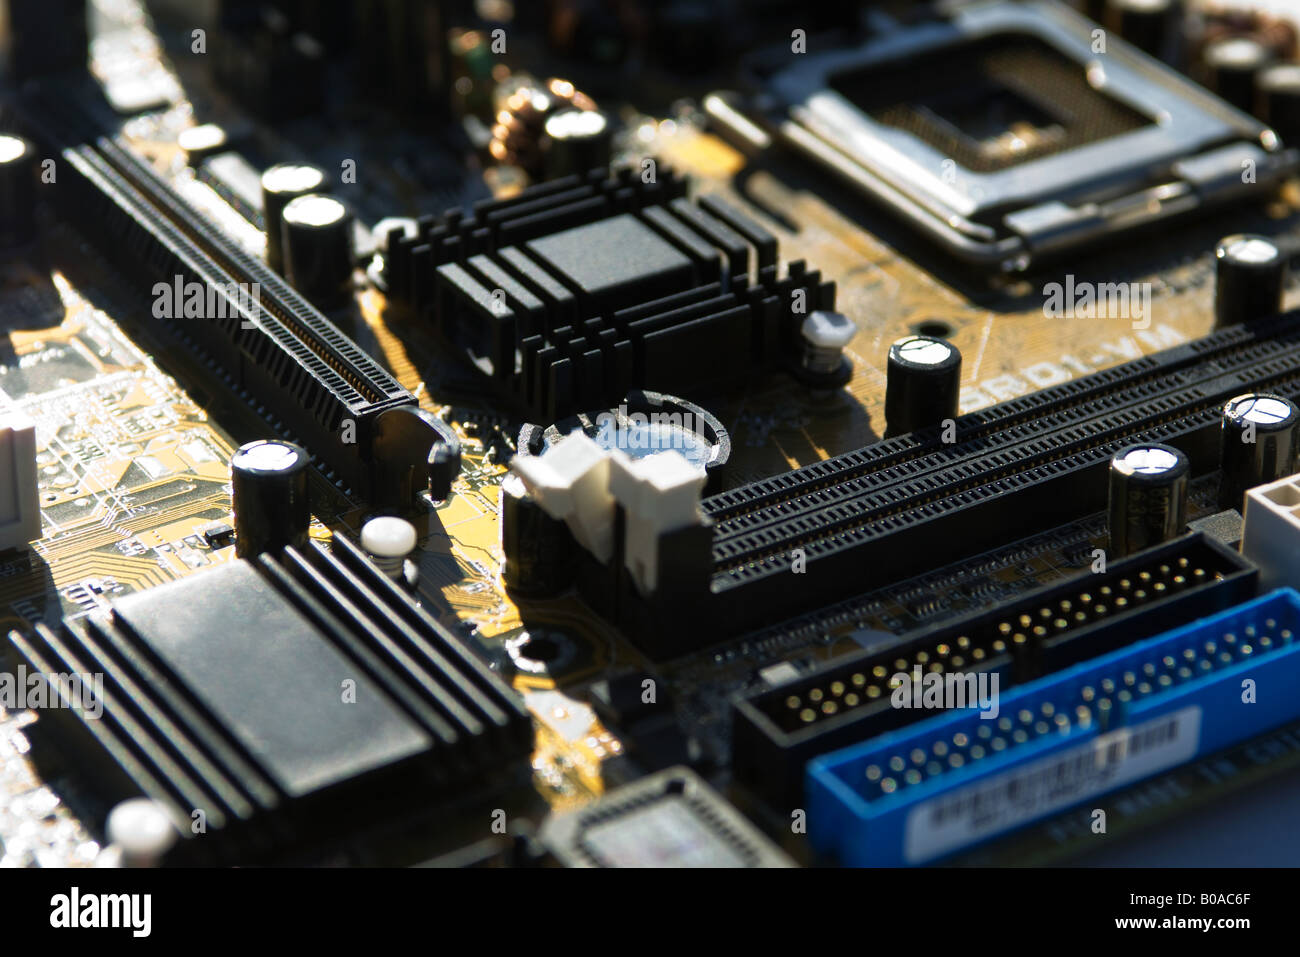 Computer motherboard, extreme close-up - Stock Image